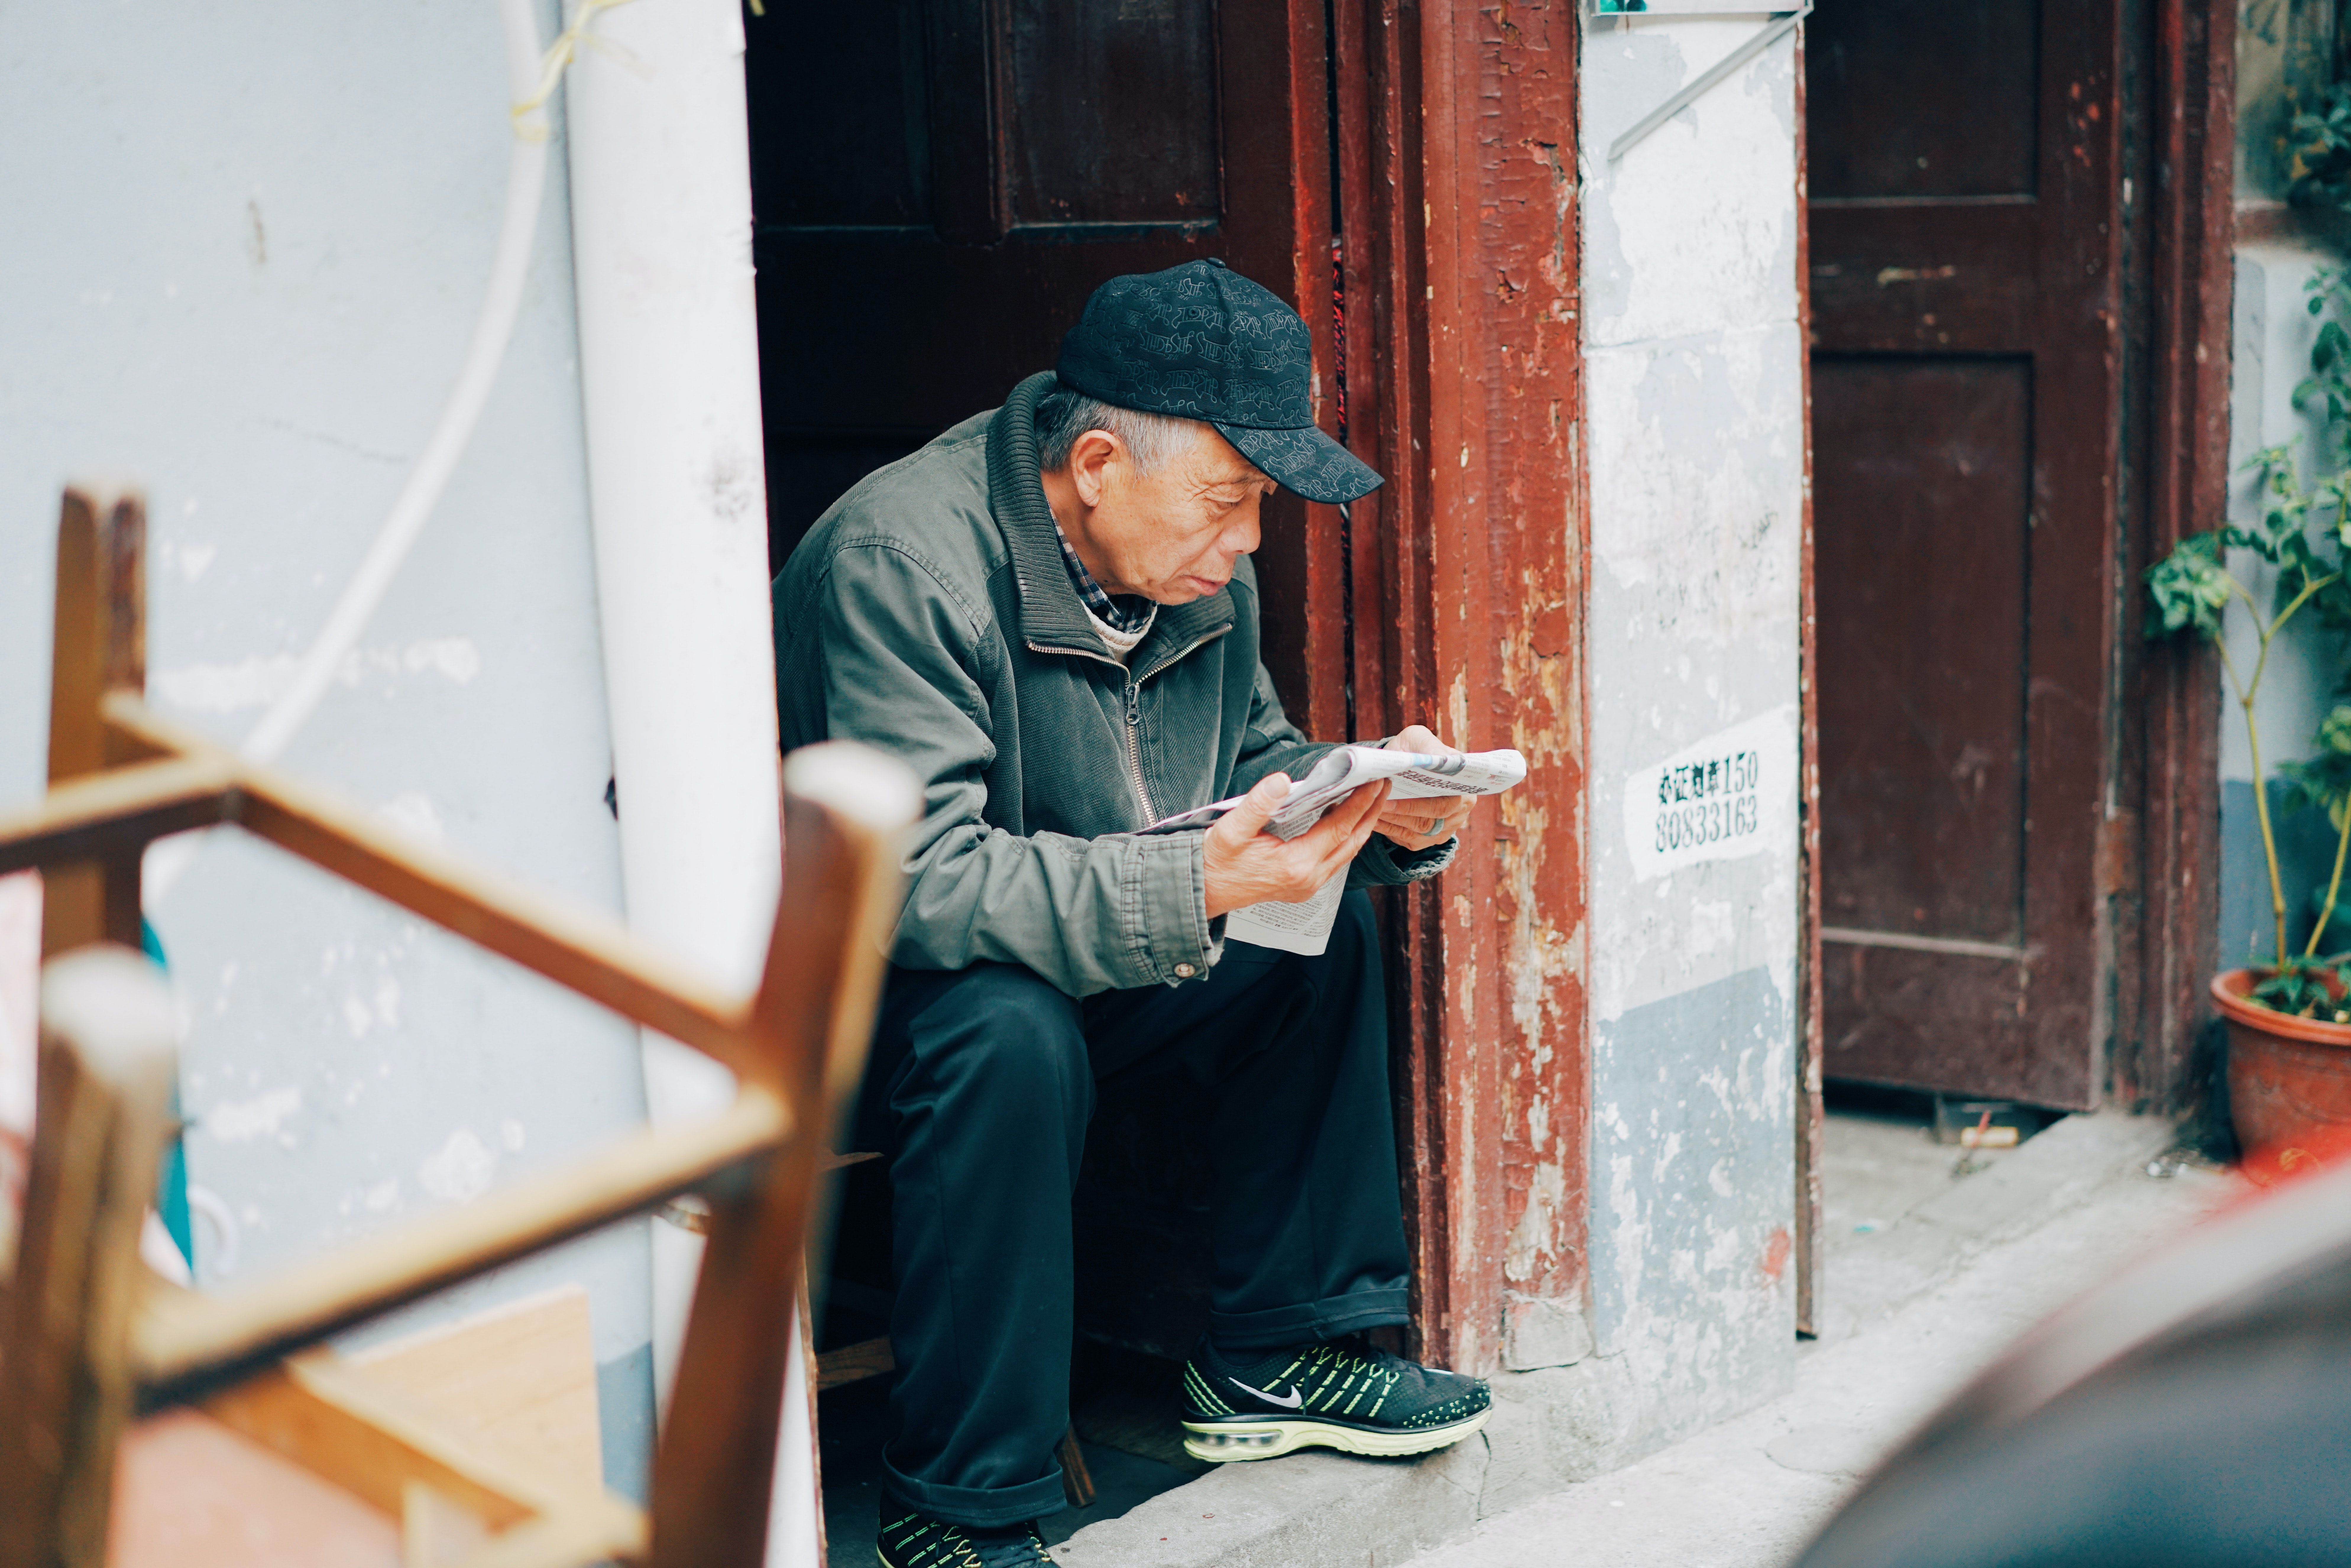 photo of woman sitting and reading newspaper